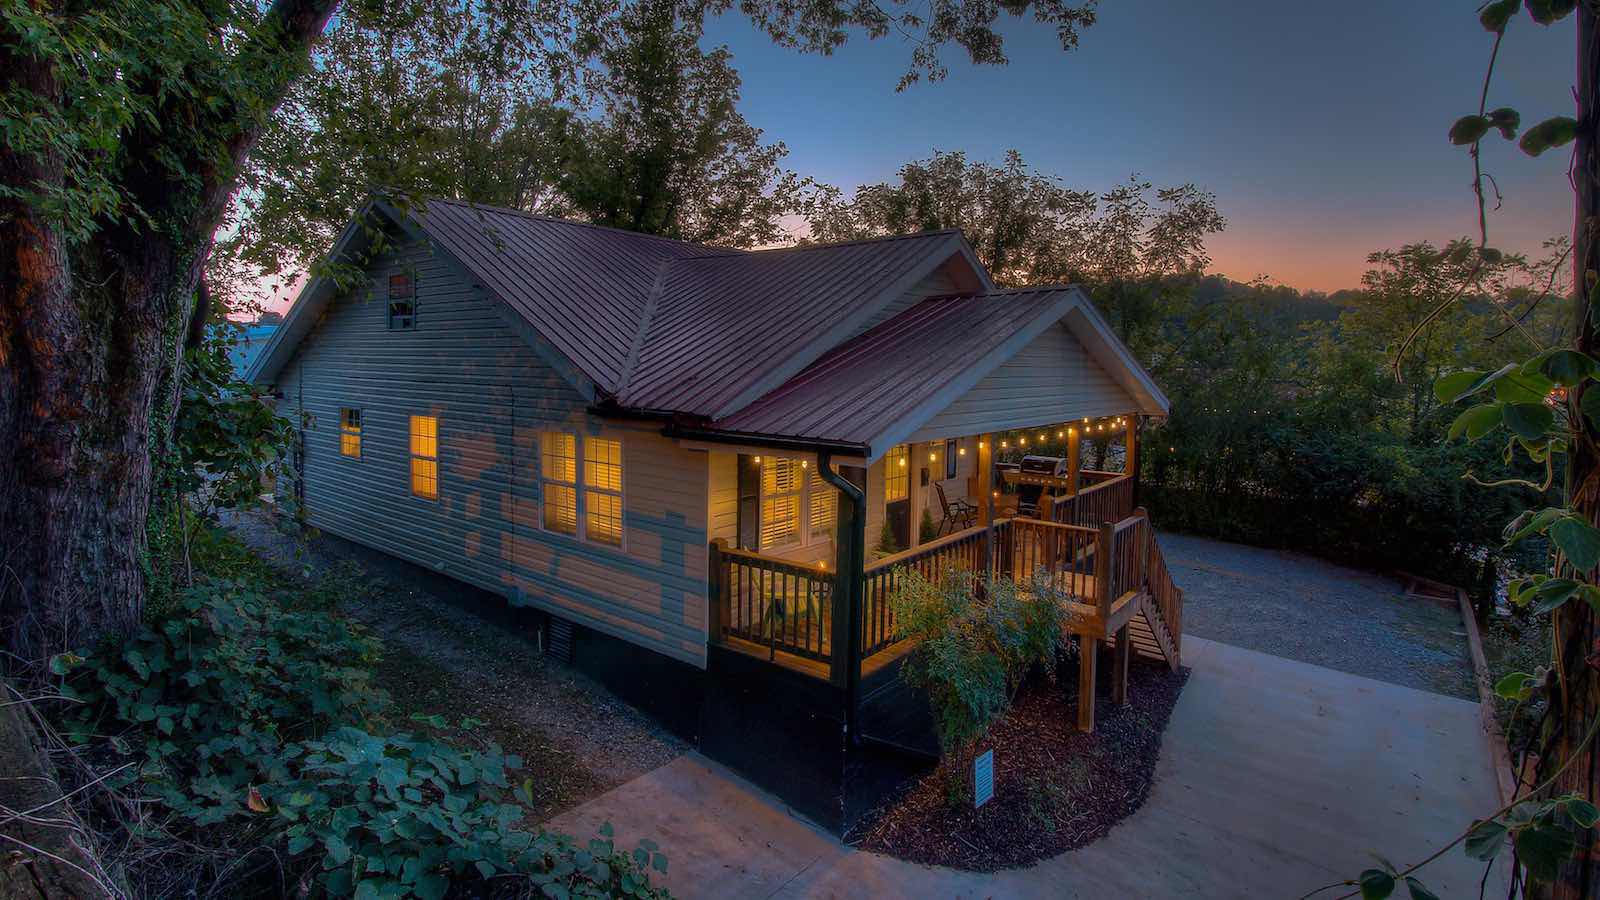 the ga rentals west sky drobek blue info ridge georgia in gatlinburg cabins north cabin river virginia on